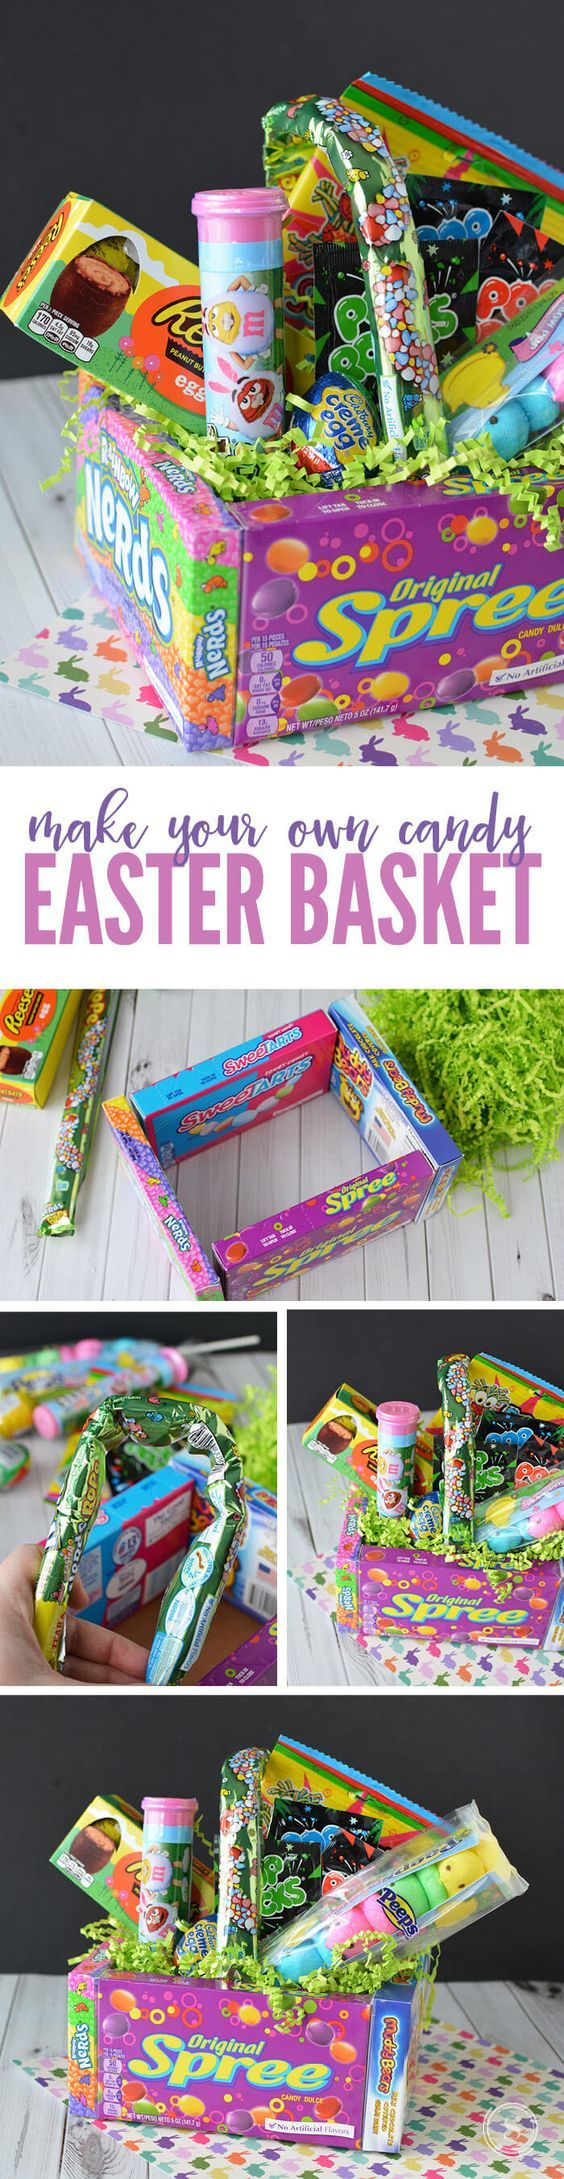 The 25 best diy easter gifts for friends ideas on pinterest diy candy easter basket easy easter idea for teachers friends or kids negle Images